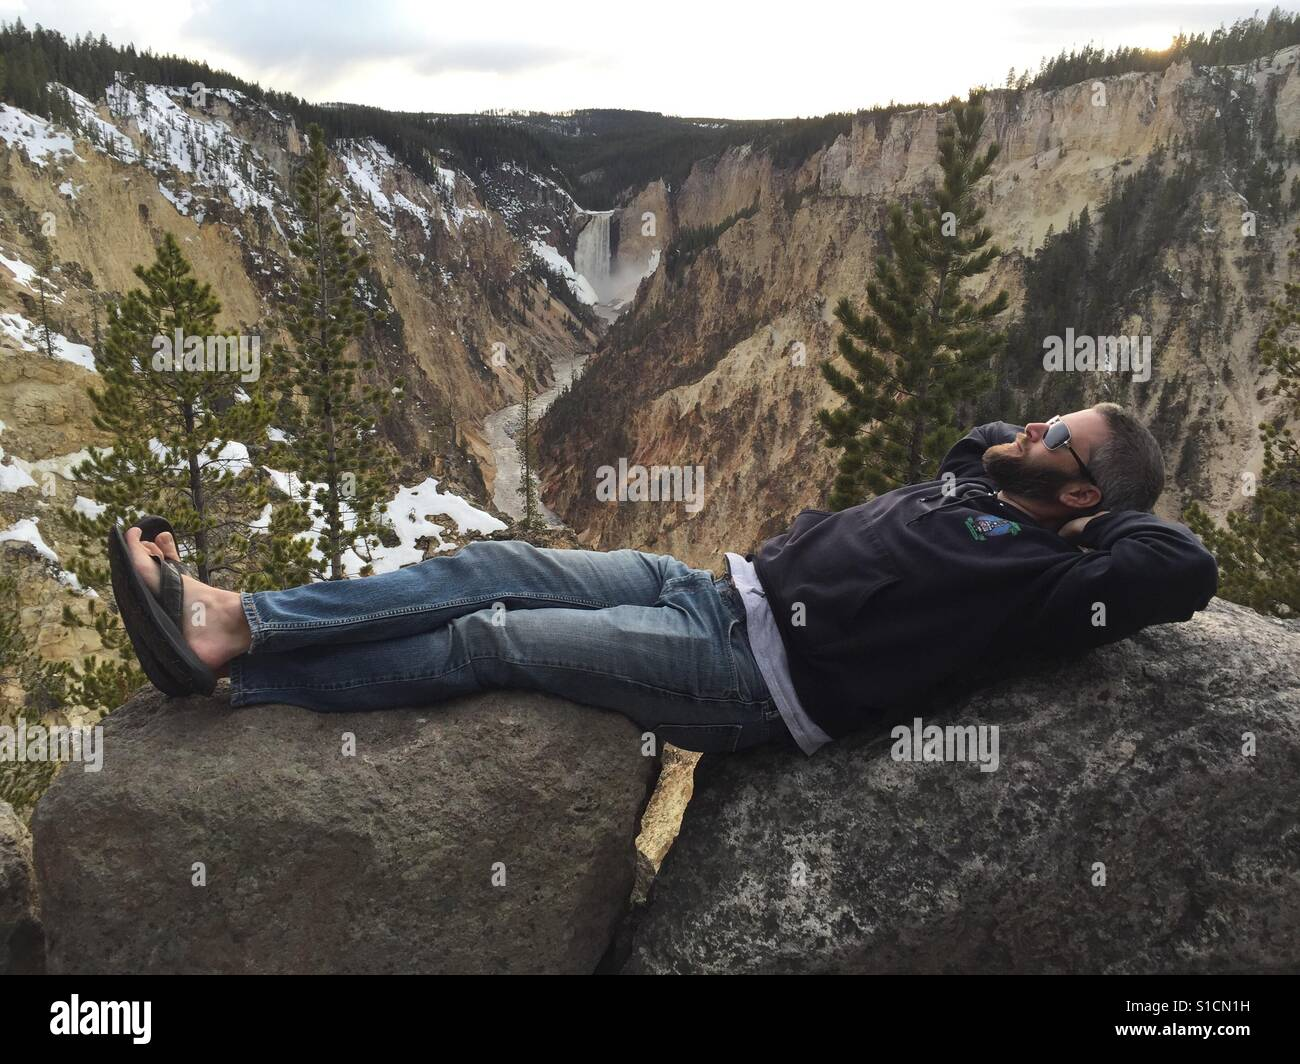 A man reclines across boulders with Upper Falls at Yellowstone National Park in the background. Stock Foto